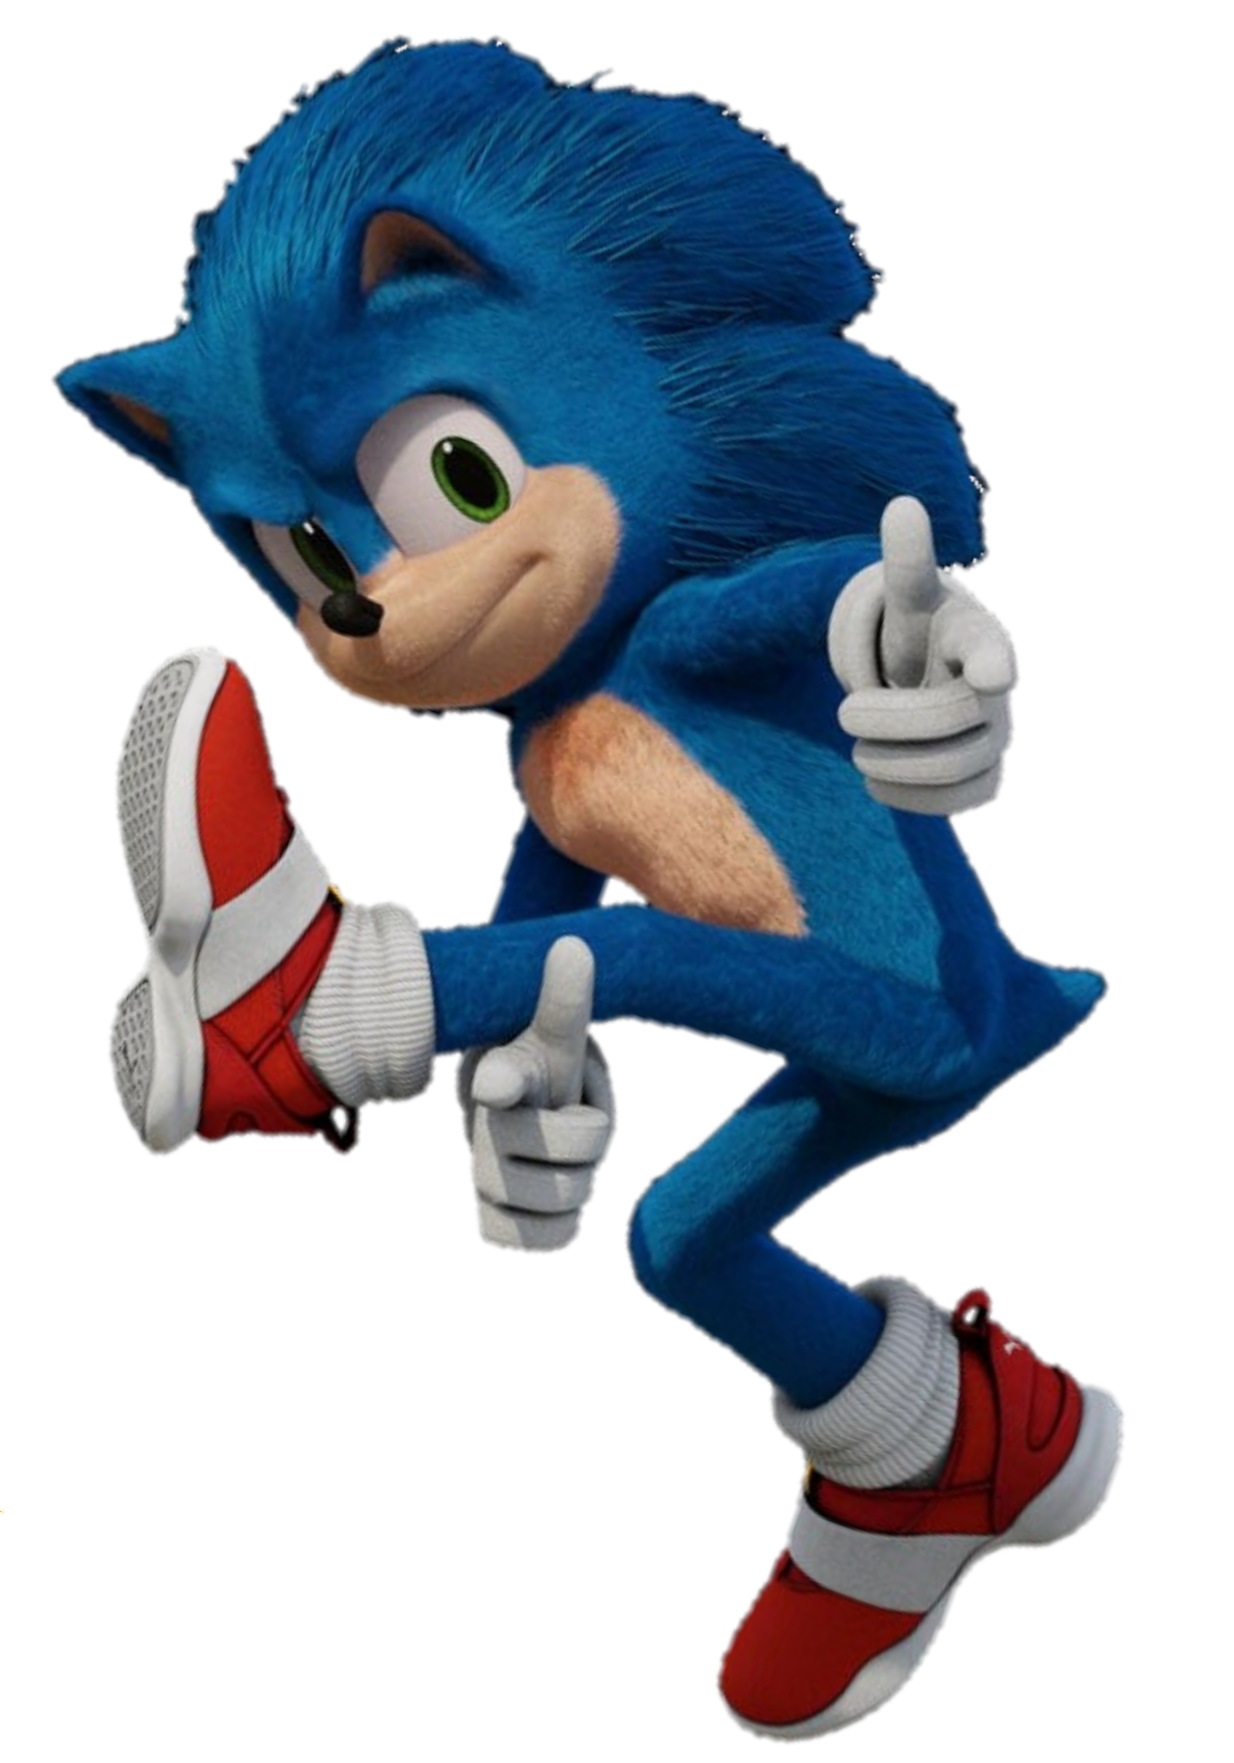 Sonic Pose Style Hedgehog Movie Sonic The Hedgehog Sonic